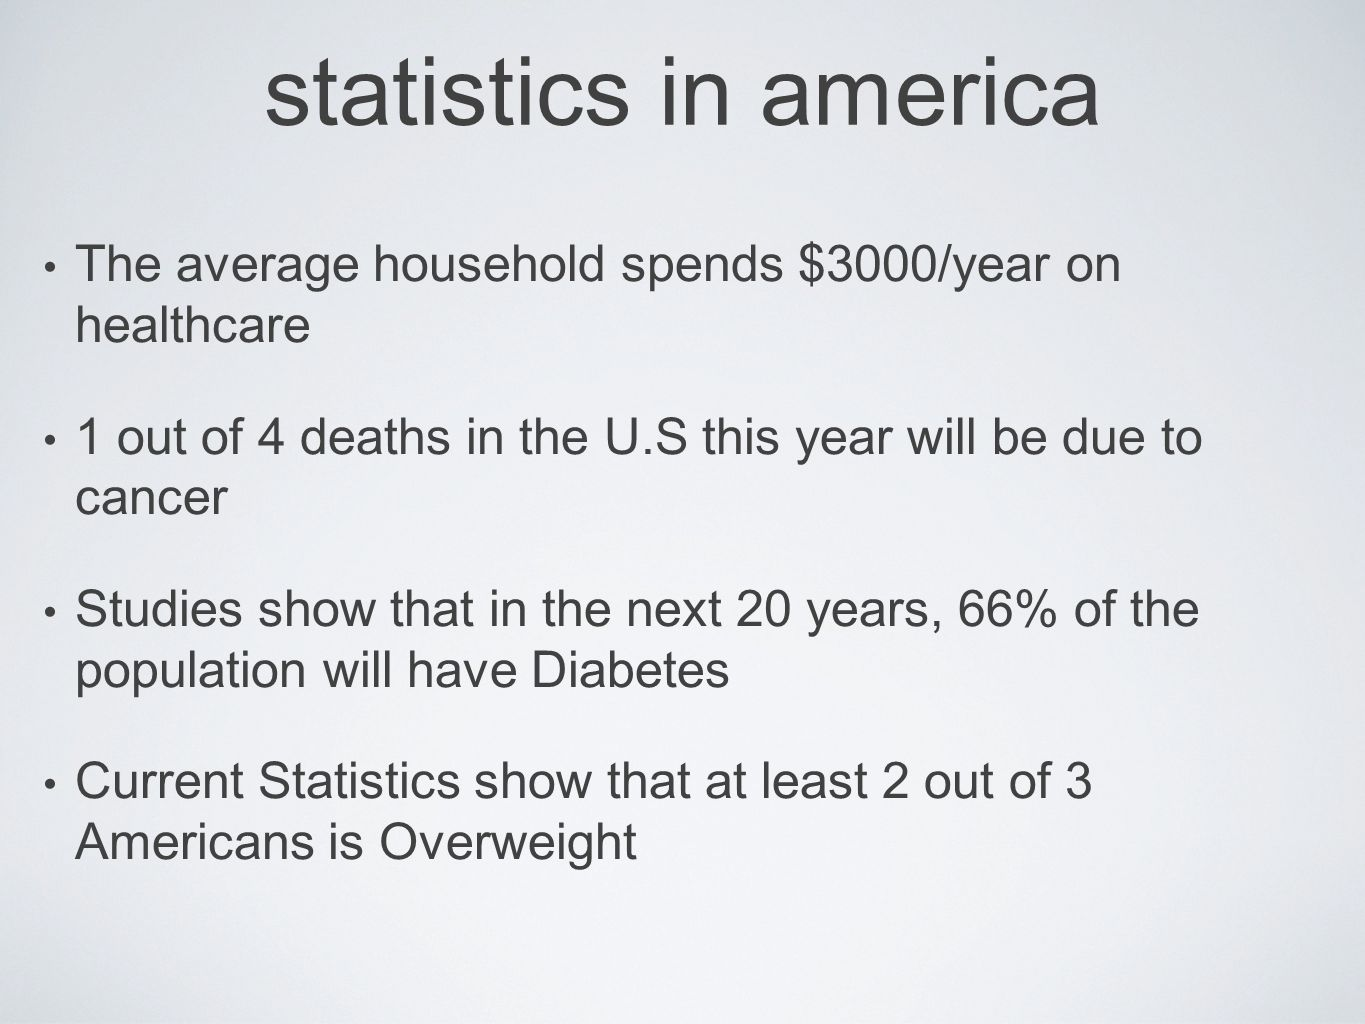 statistics in america The average household spends $3000/year on healthcare. 1 out of 4 deaths in the U.S this year will be due to cancer.